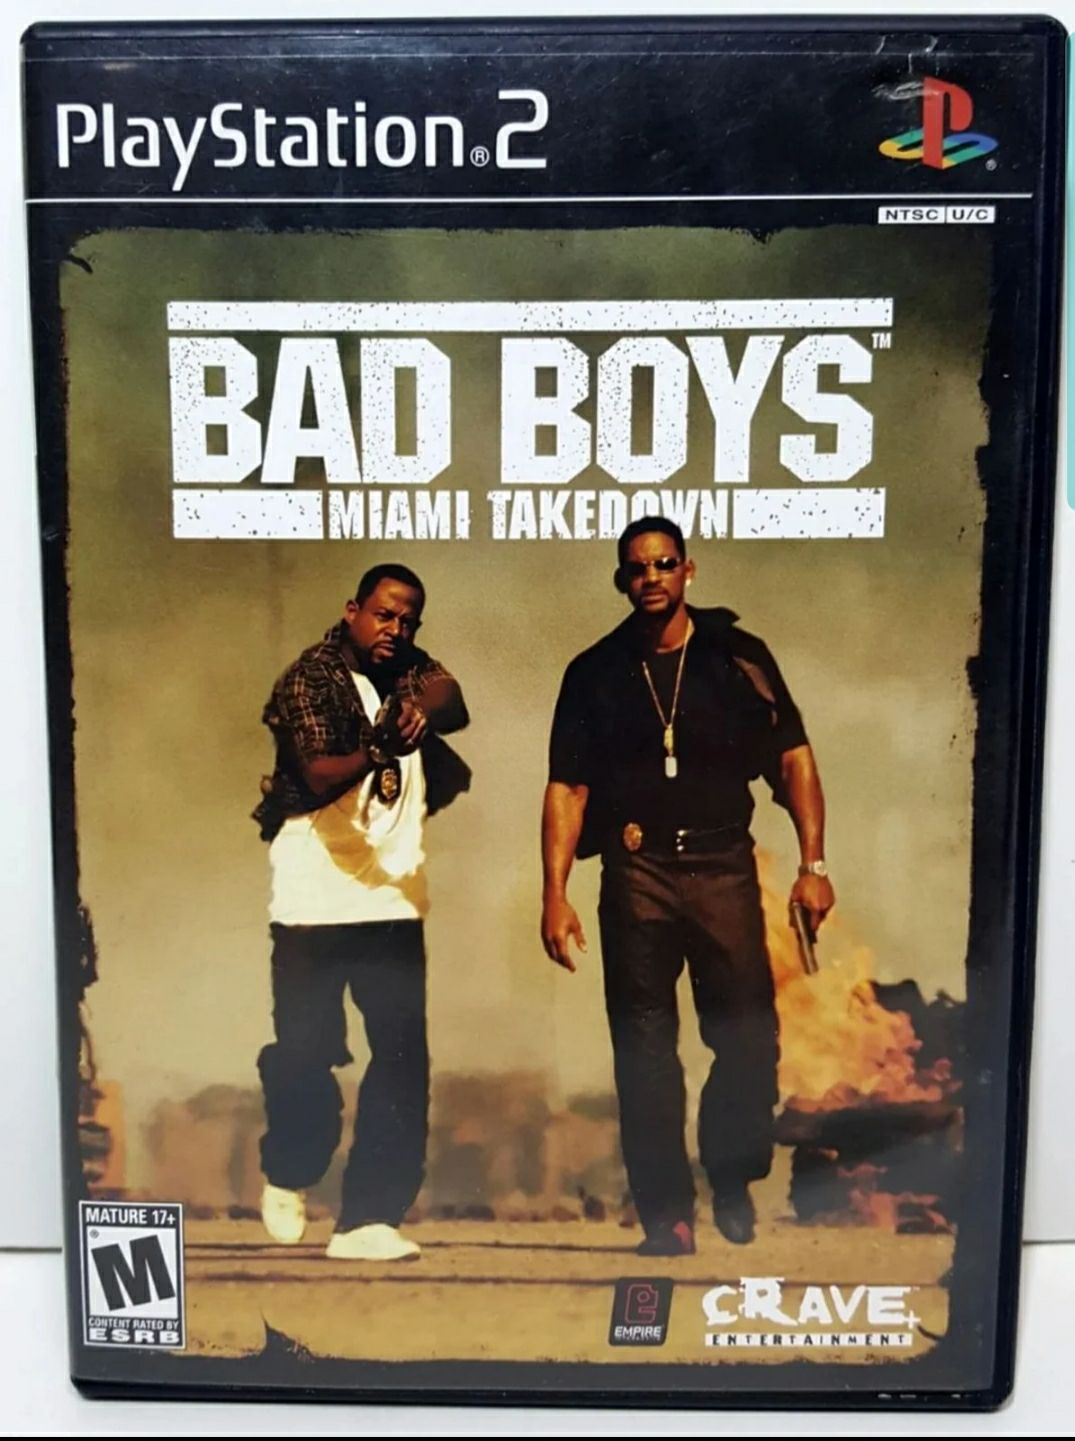 Playstation 2 Bad Boys Miami Takedown